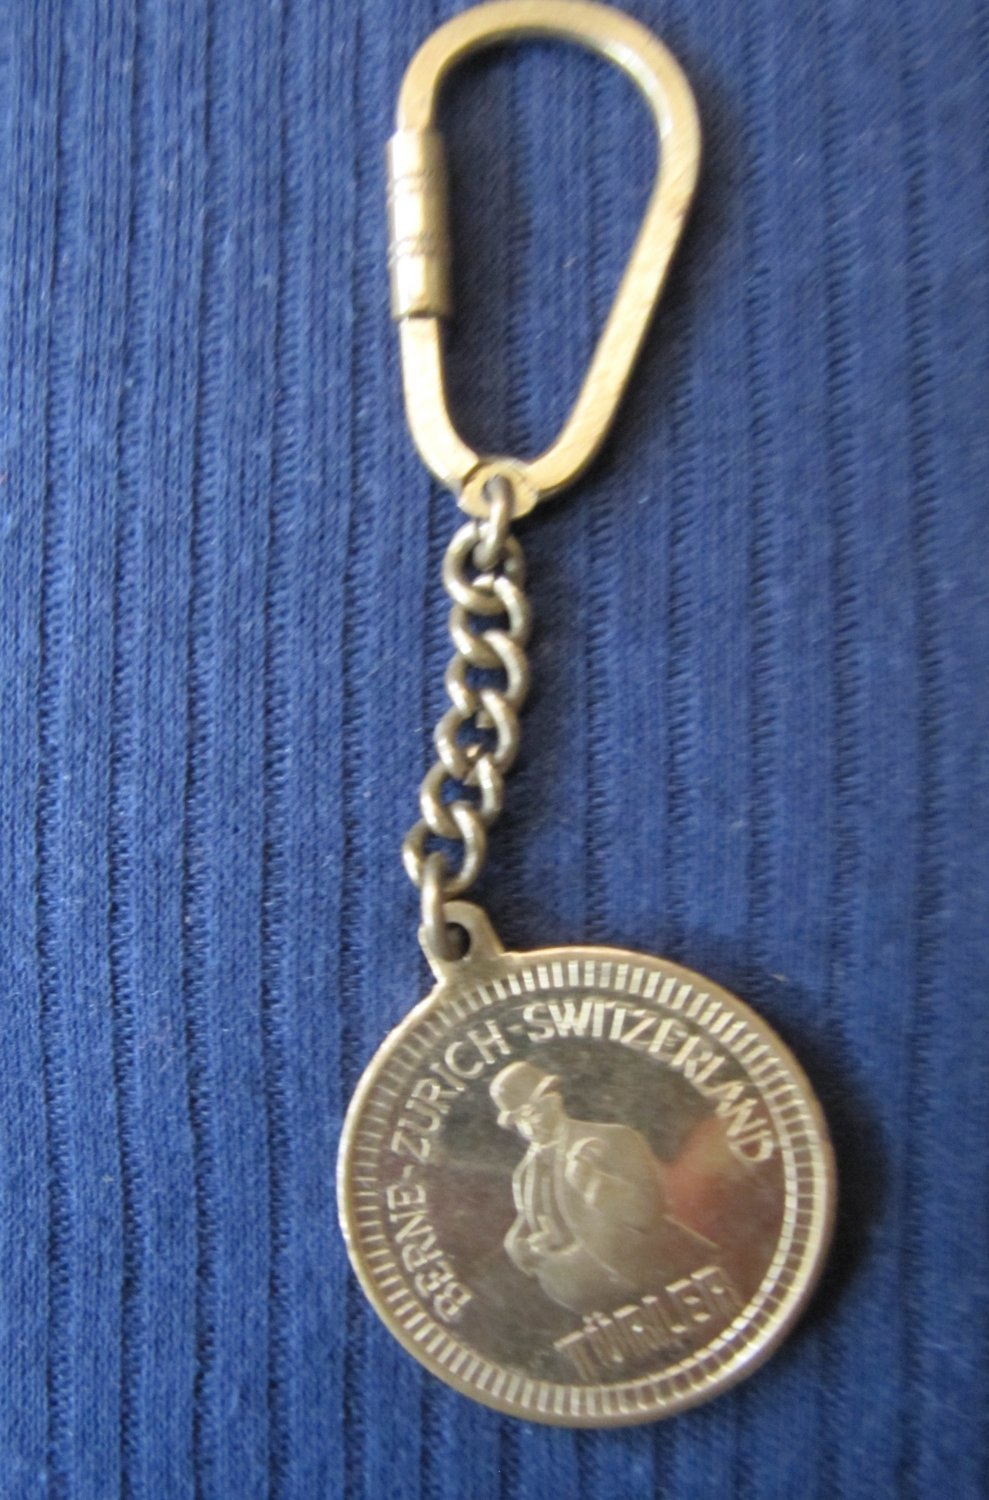 Vintage Turler Swiss Jewelry Advertisement Metal Coin Token on Key Fob Chain 1.5 Inch